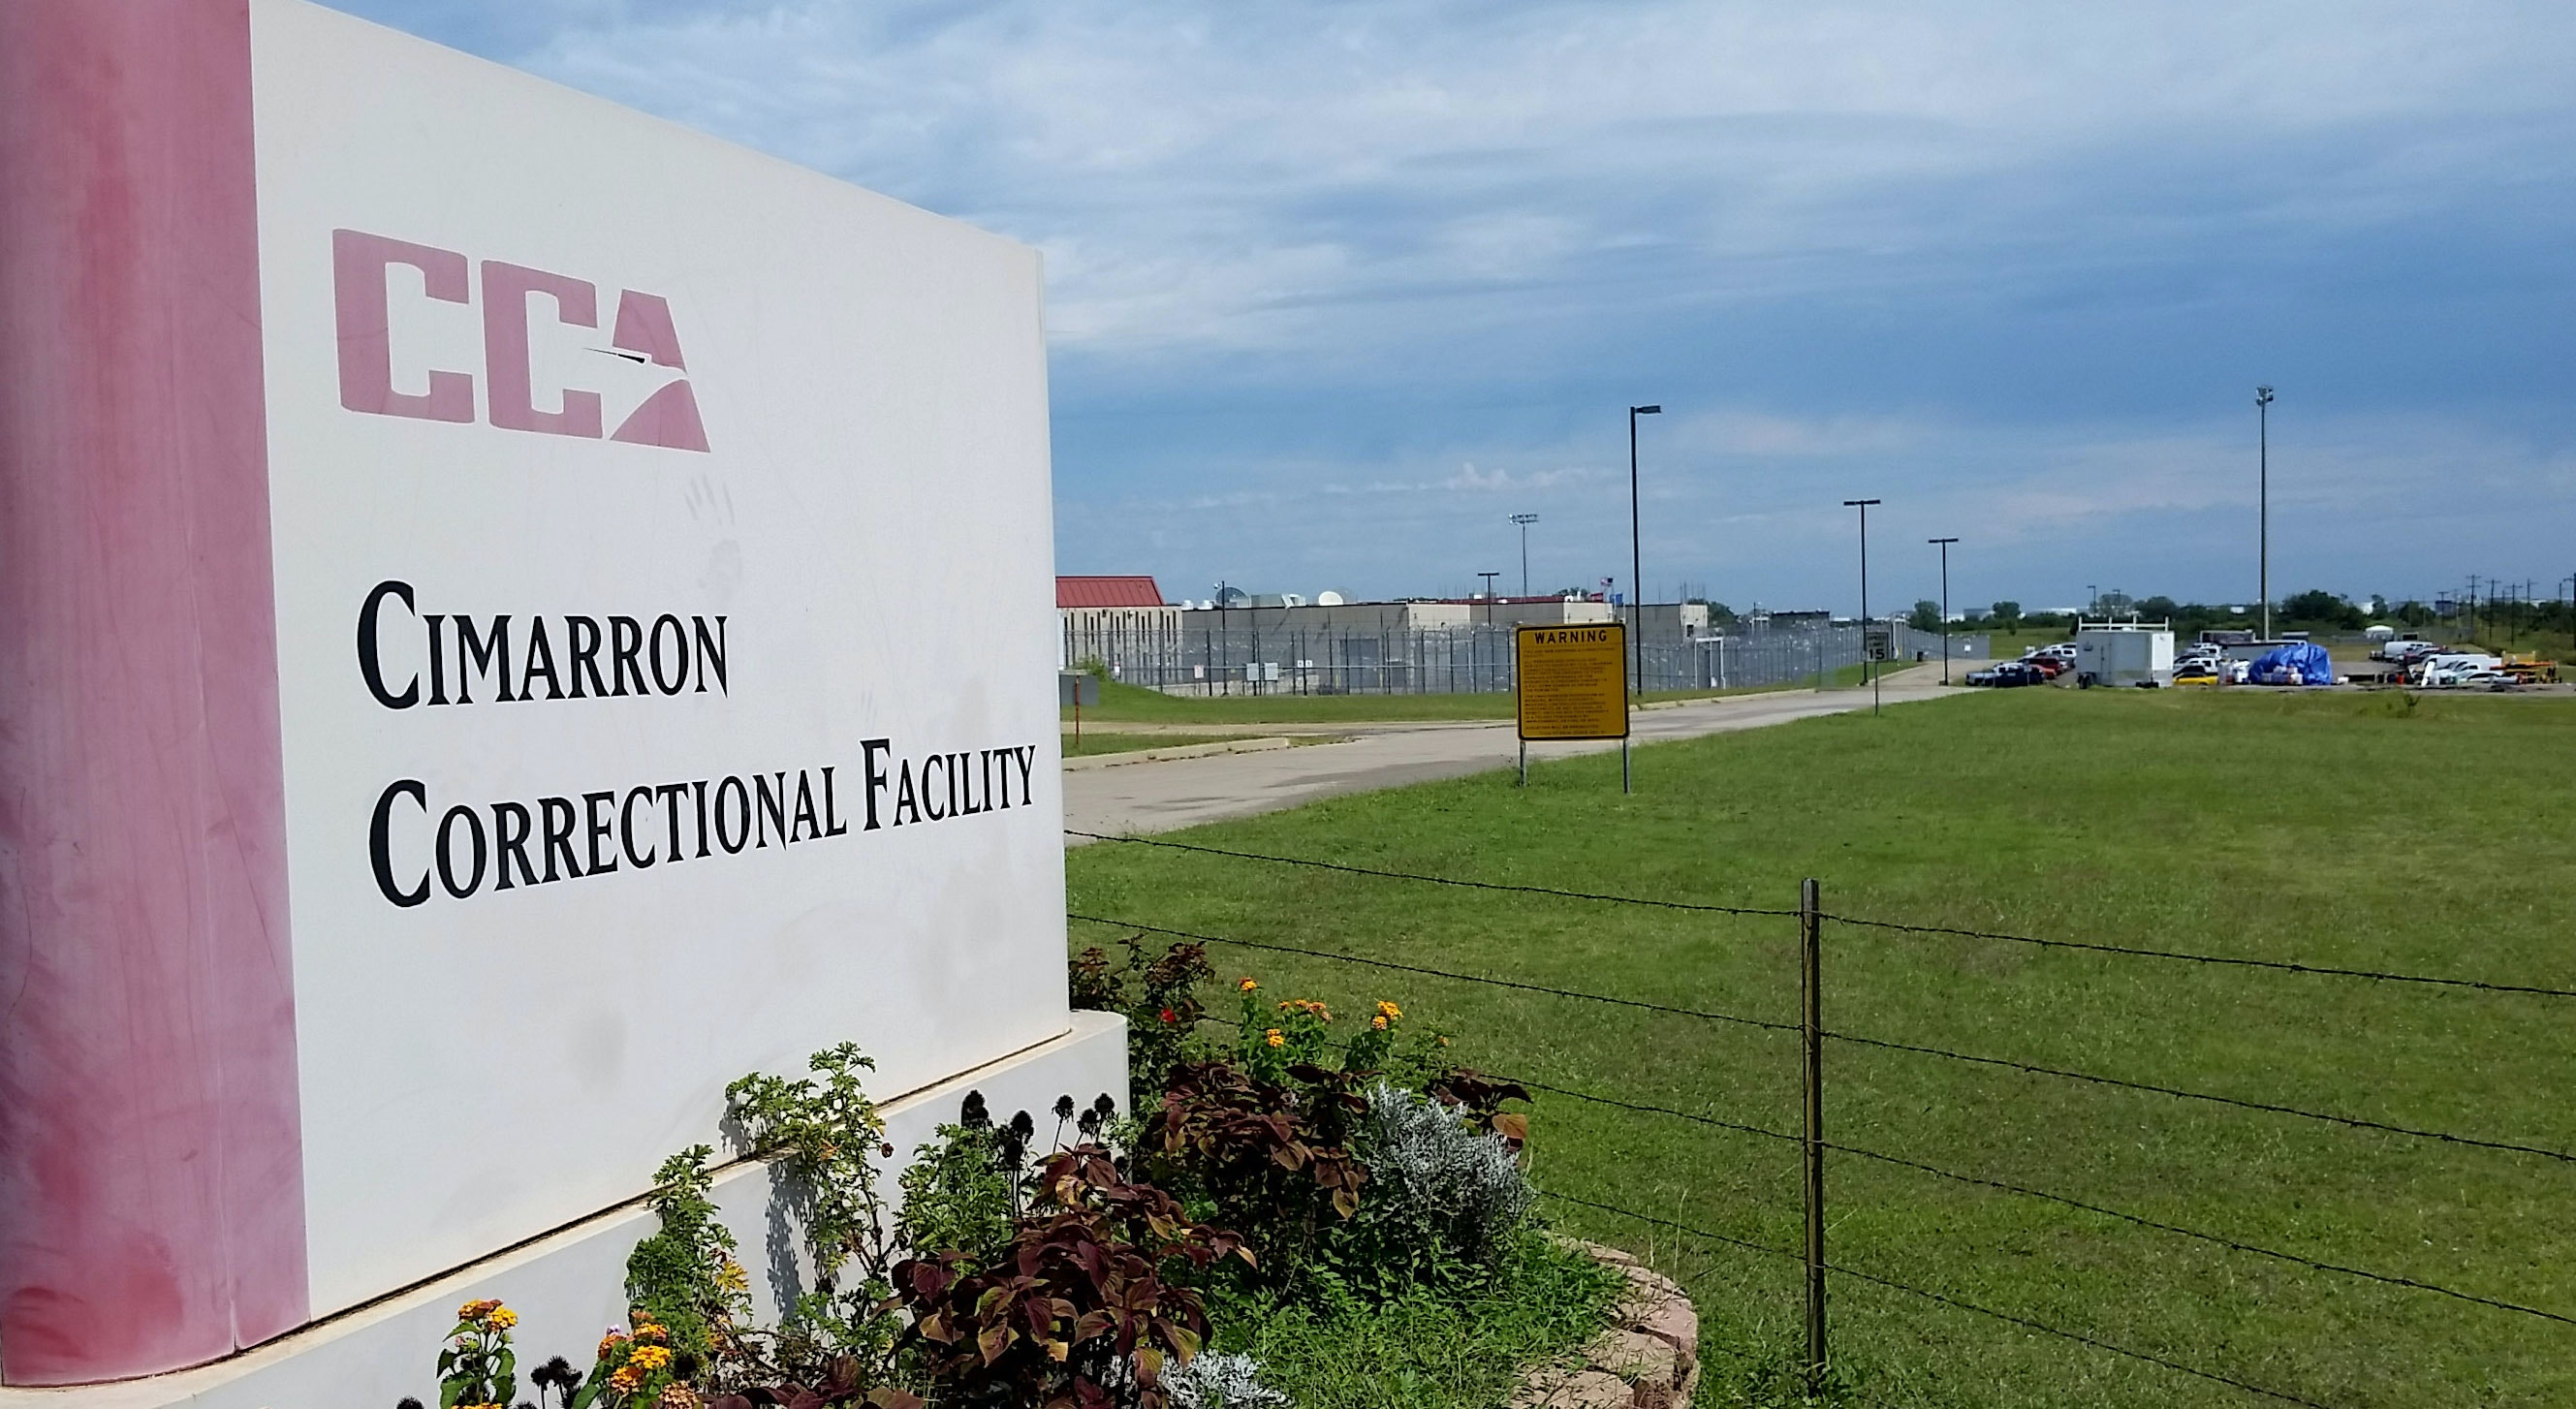 Cimarron Correctional Facility in Cushing, Oklahoma is seen in this Monday, Sept. 14, 2015 photo. The private prison where violence erupted over the weekend and left four inmates dead is one of three private facilities that house nearly 6,000 Oklahoma inmates. A rash of violence at these facilities is prompting questions about whether there is adequate staffing and oversight to prevent such episodes. (AP Photo/Kelly Kissel)